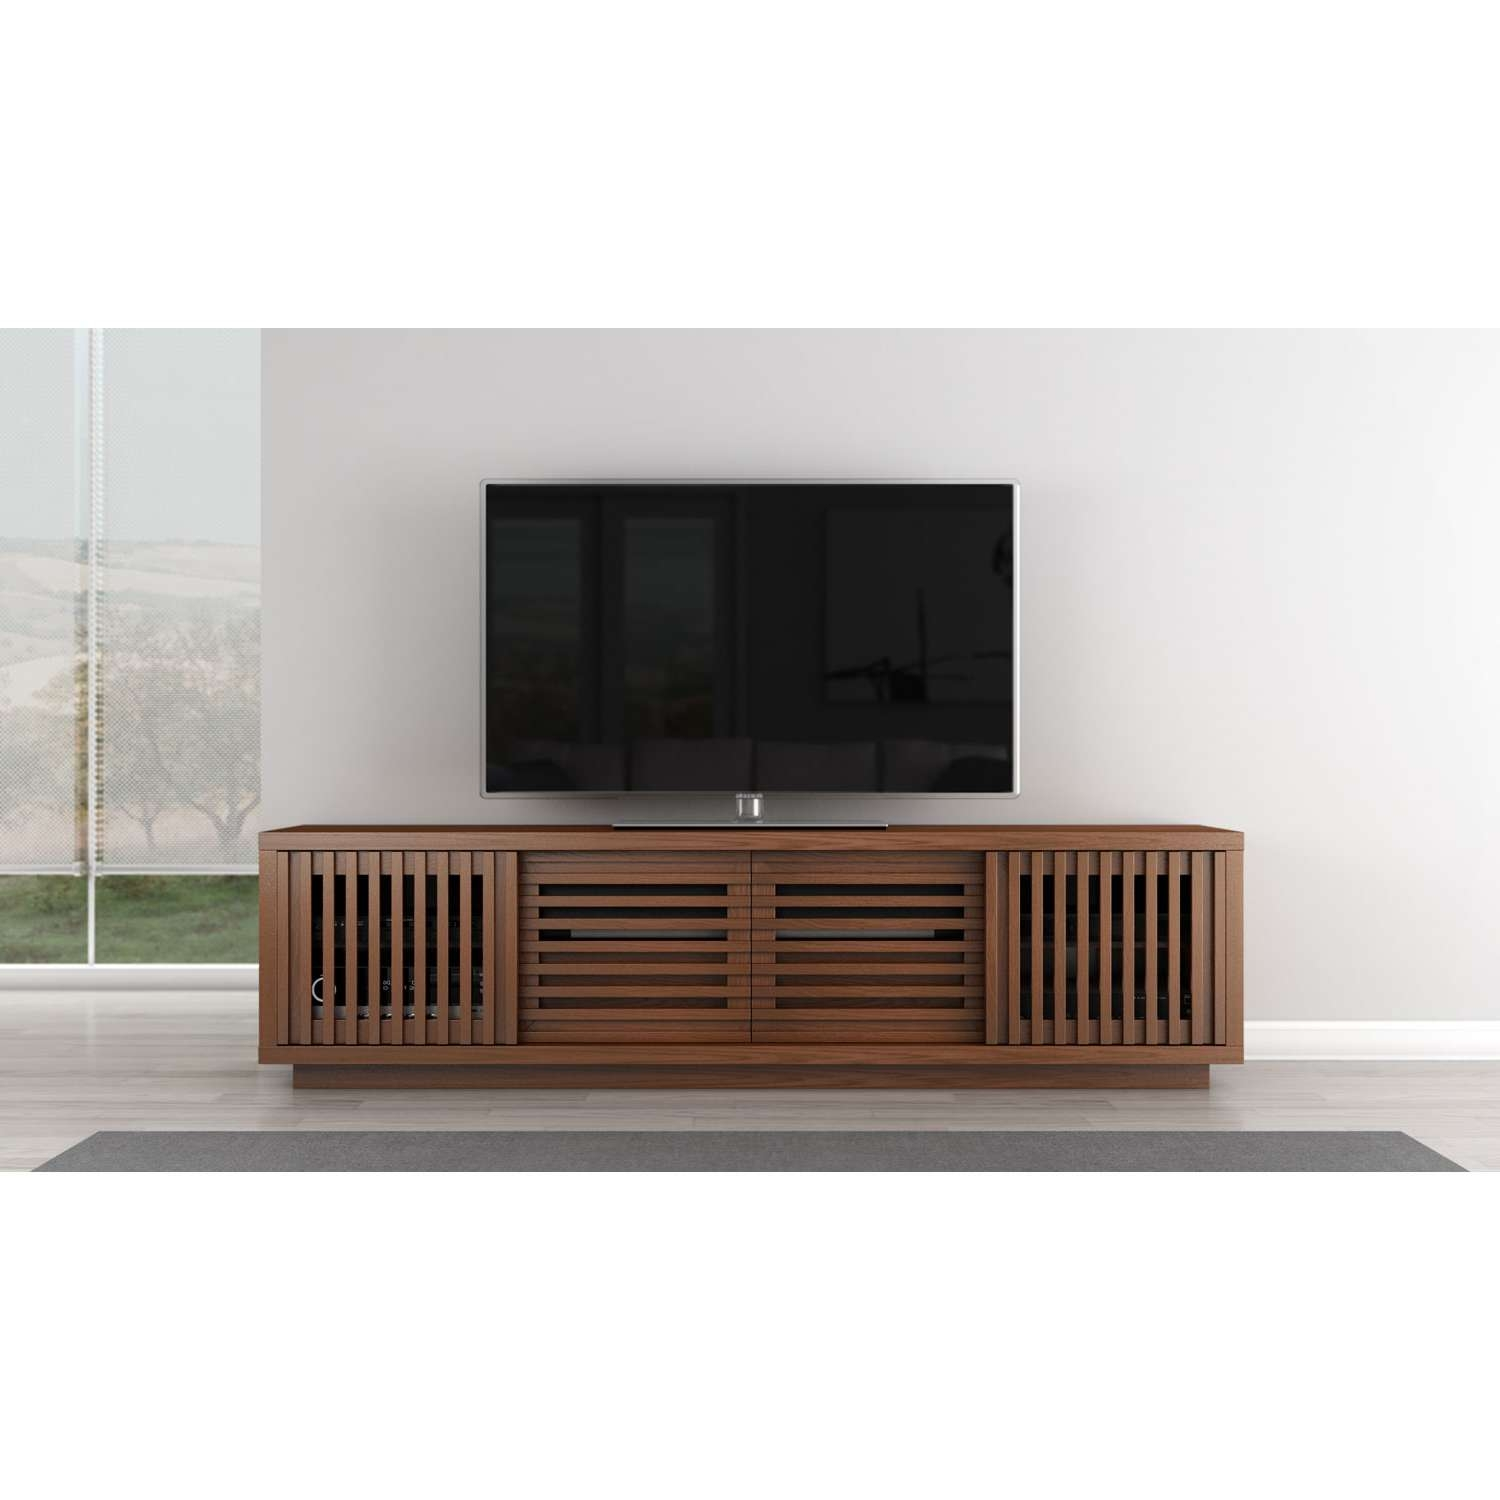 Honey Oak Tv Stand : Innovative Designs Oak Tv Console – Marku Within Honey Oak Tv Stands (View 5 of 15)